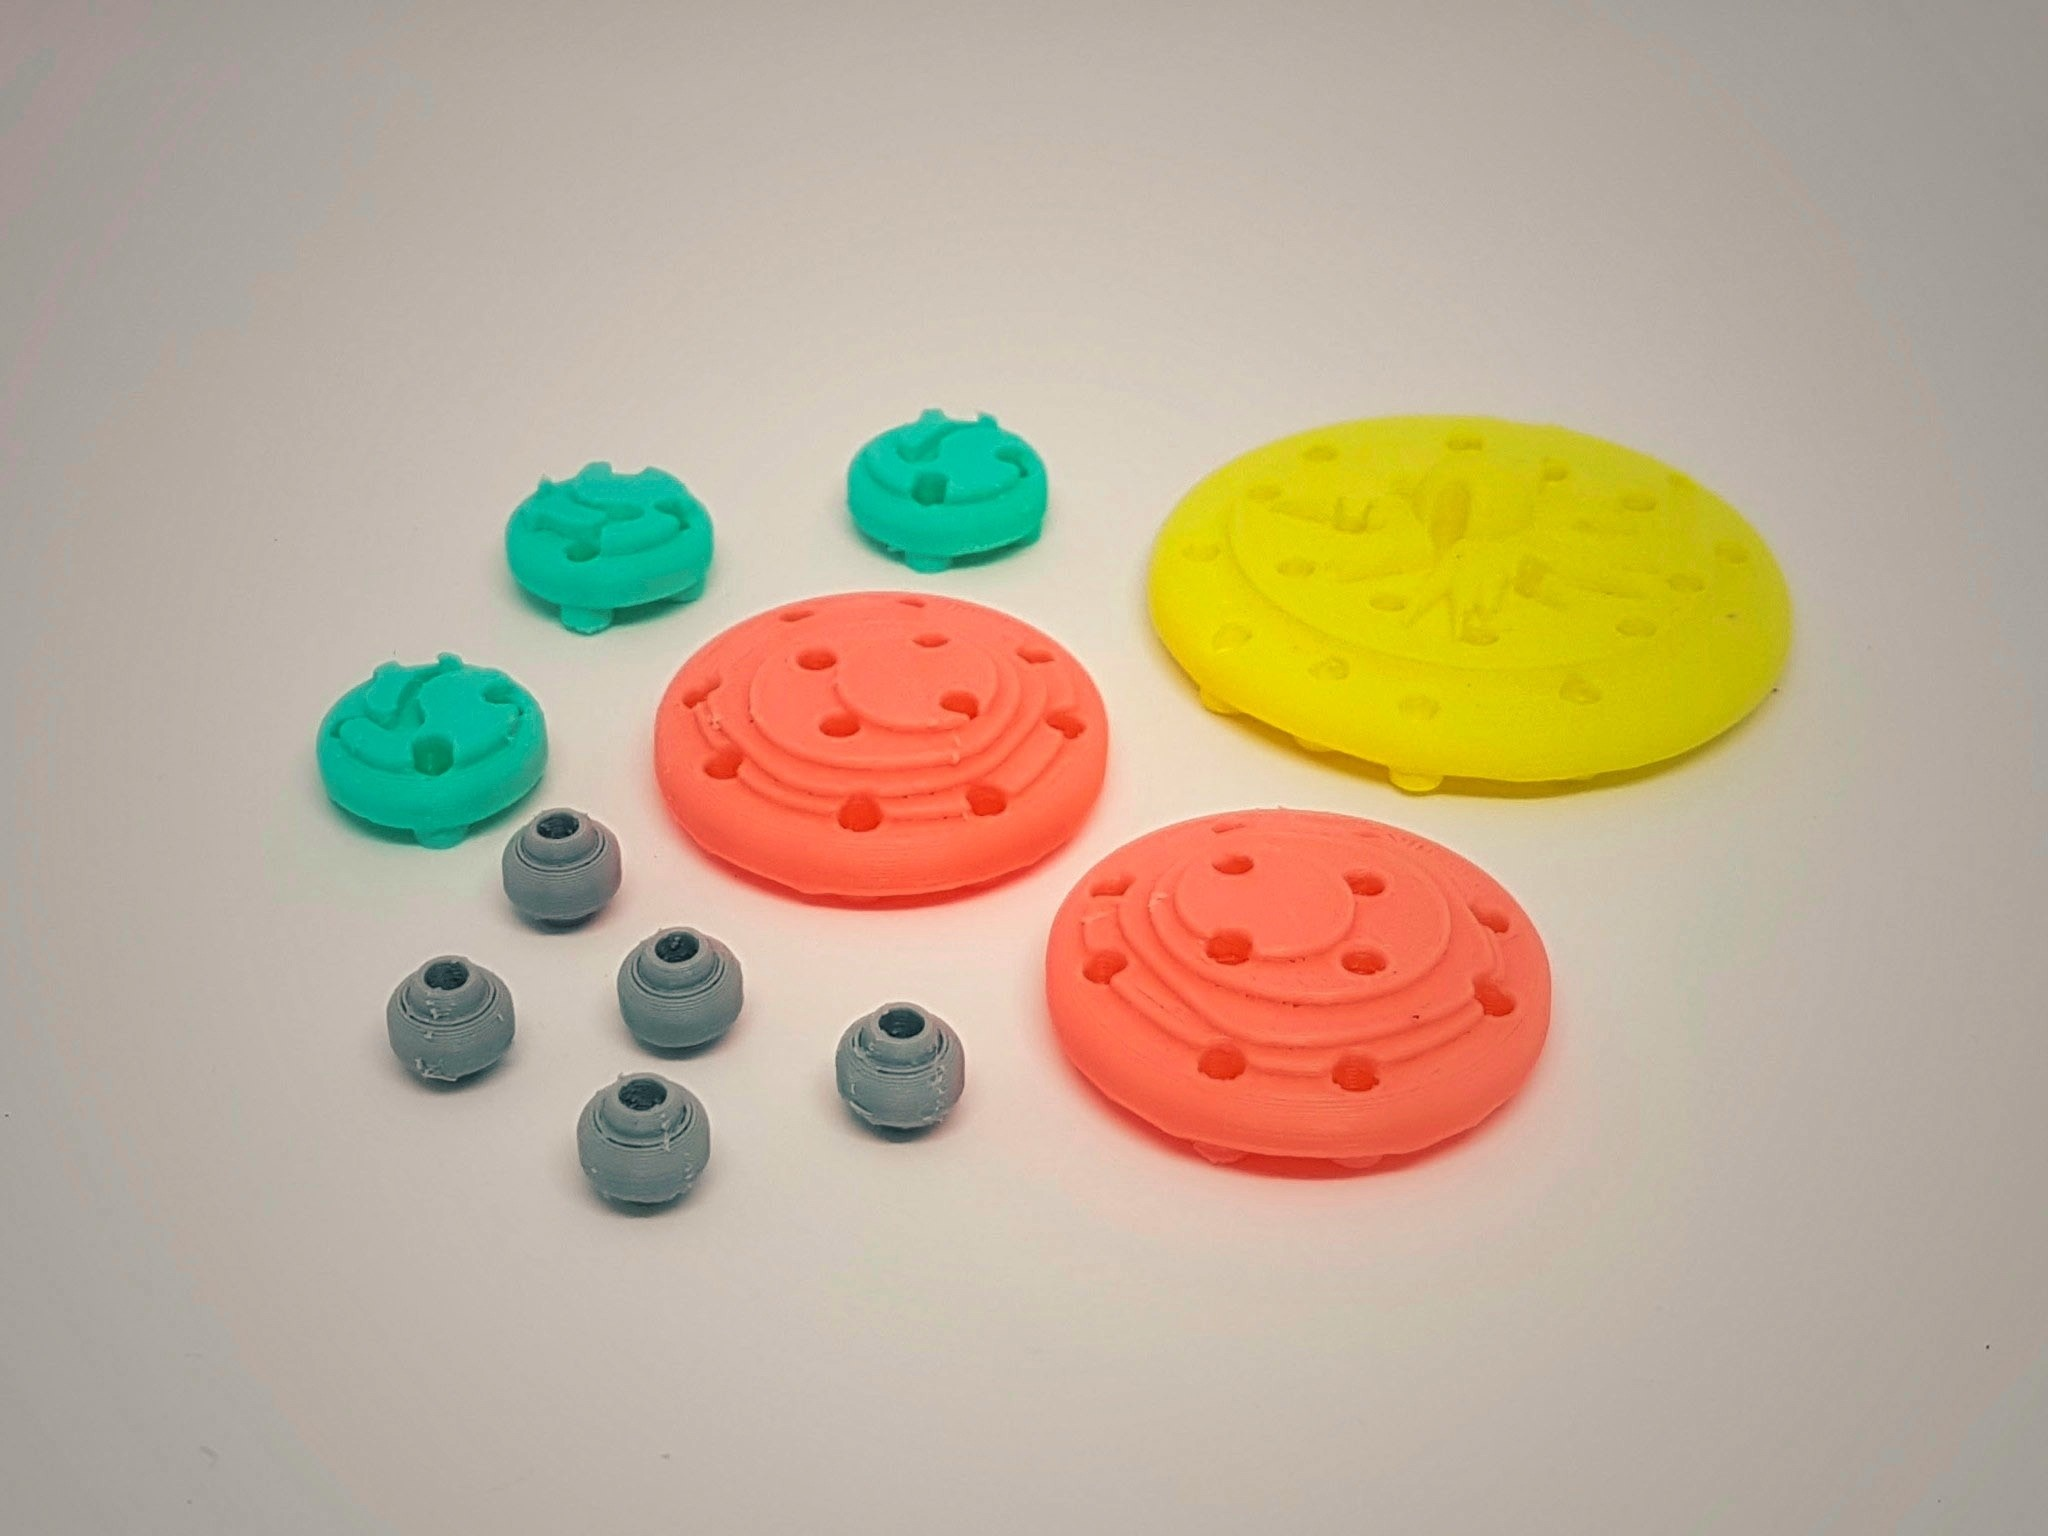 Celestial_Bodies_1a_OK.jpg Download free STL file Find My Planets - Guessing Game (Battleship style) • 3D printer object, Relicae